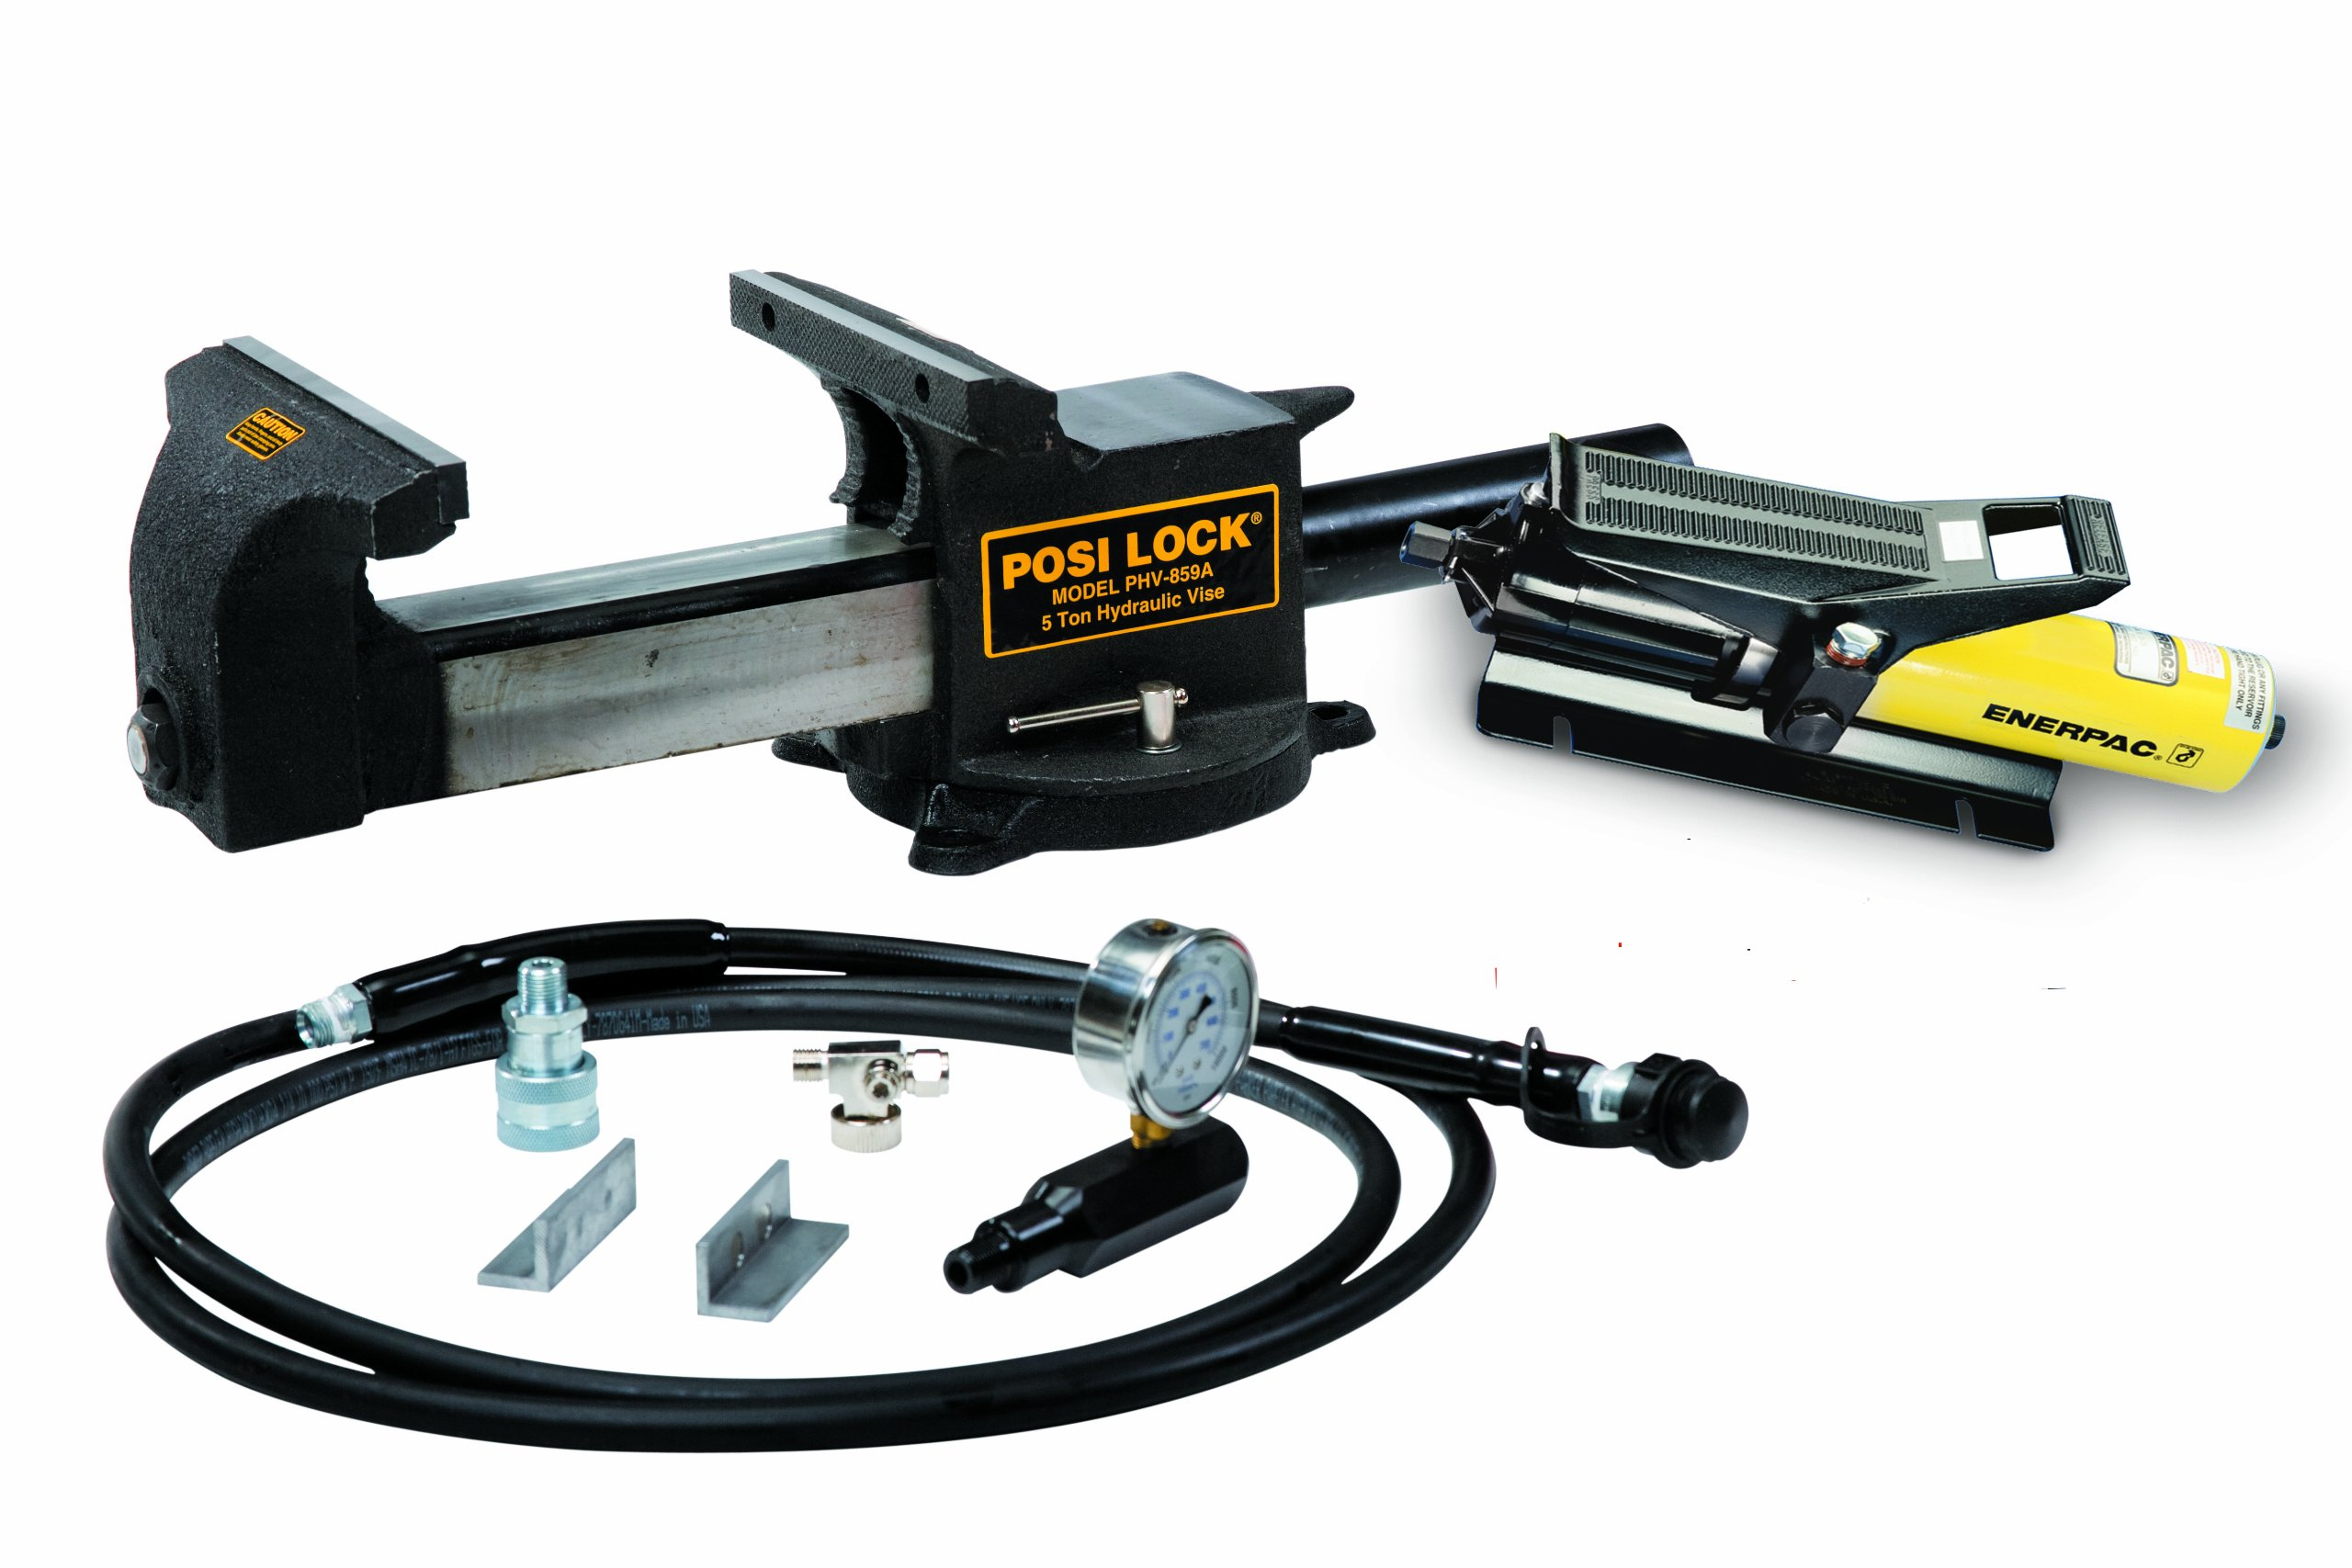 Posi Lock PHV859A Puller Hydraulic Bench Vise, 5 tons Capacity